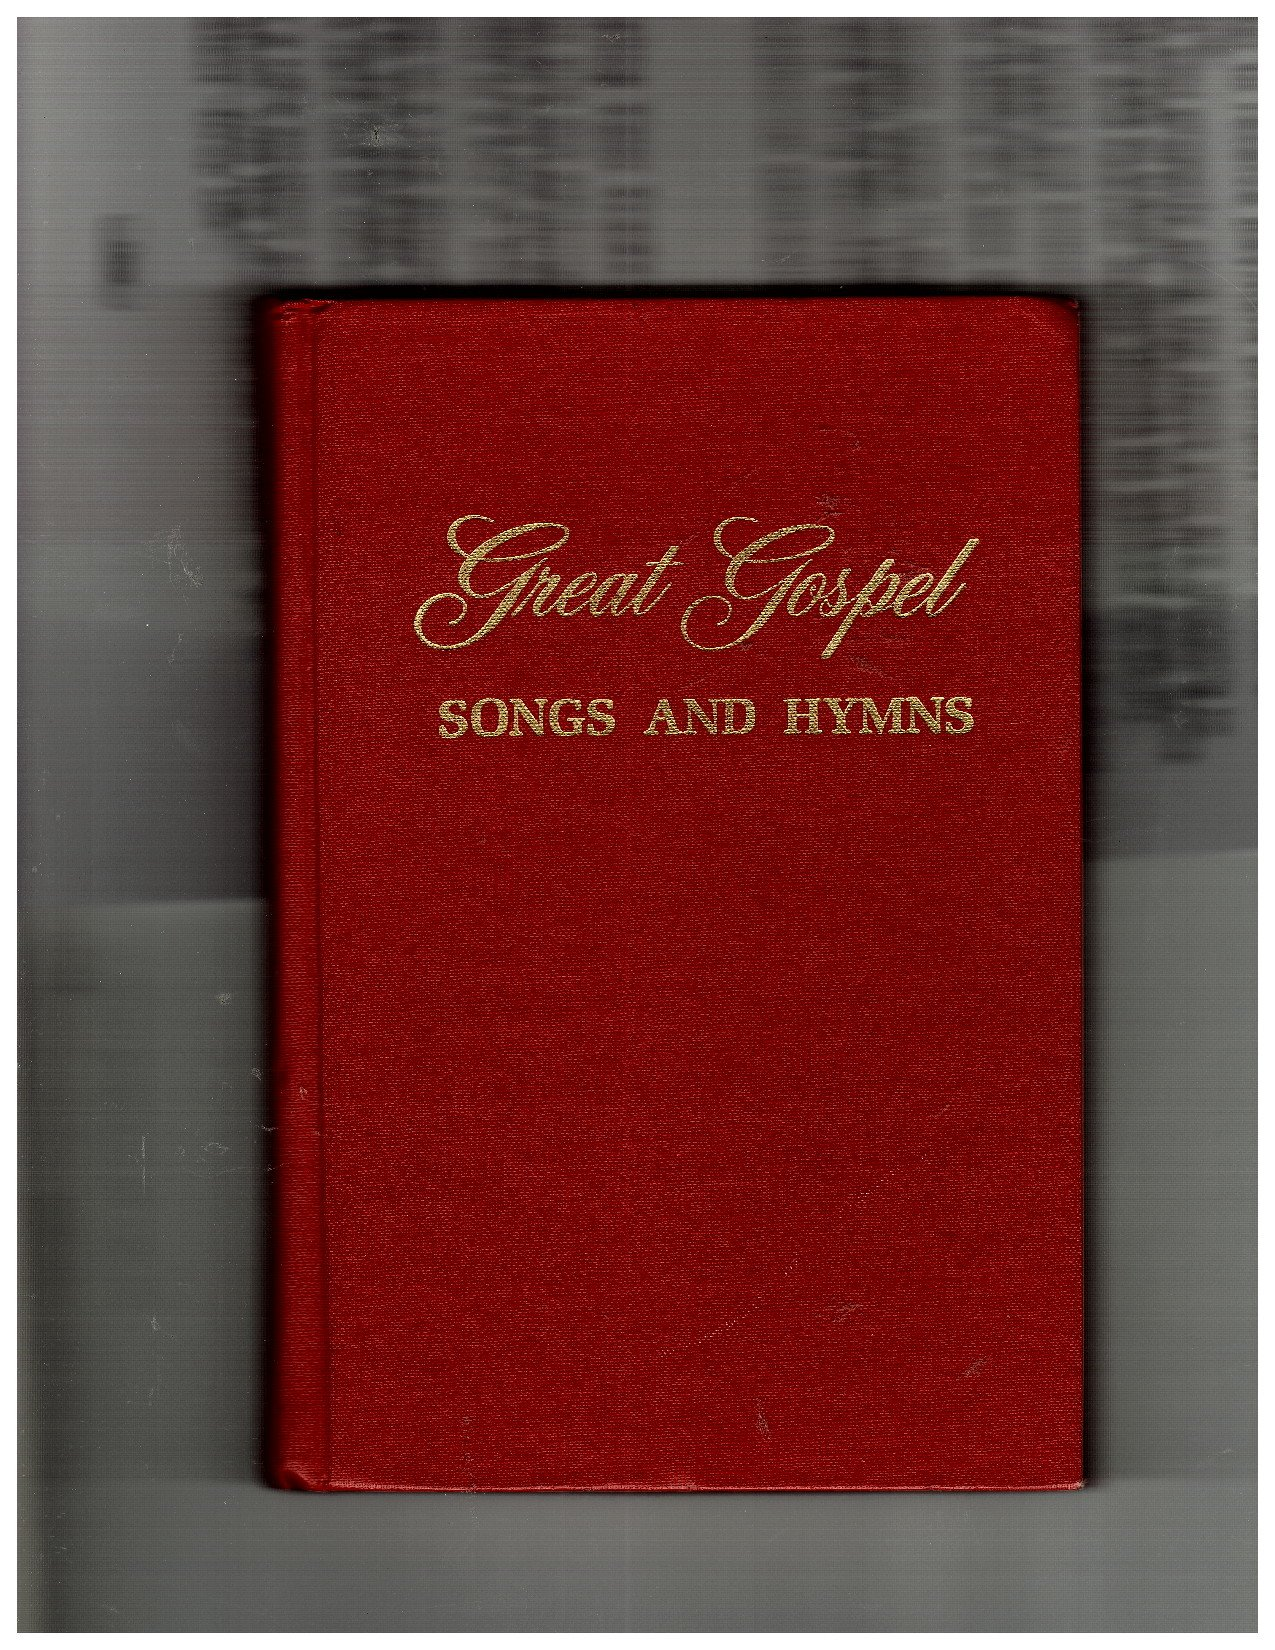 Great Gospel Songs and Hymns: Shape Note Edition (1976 Copy)